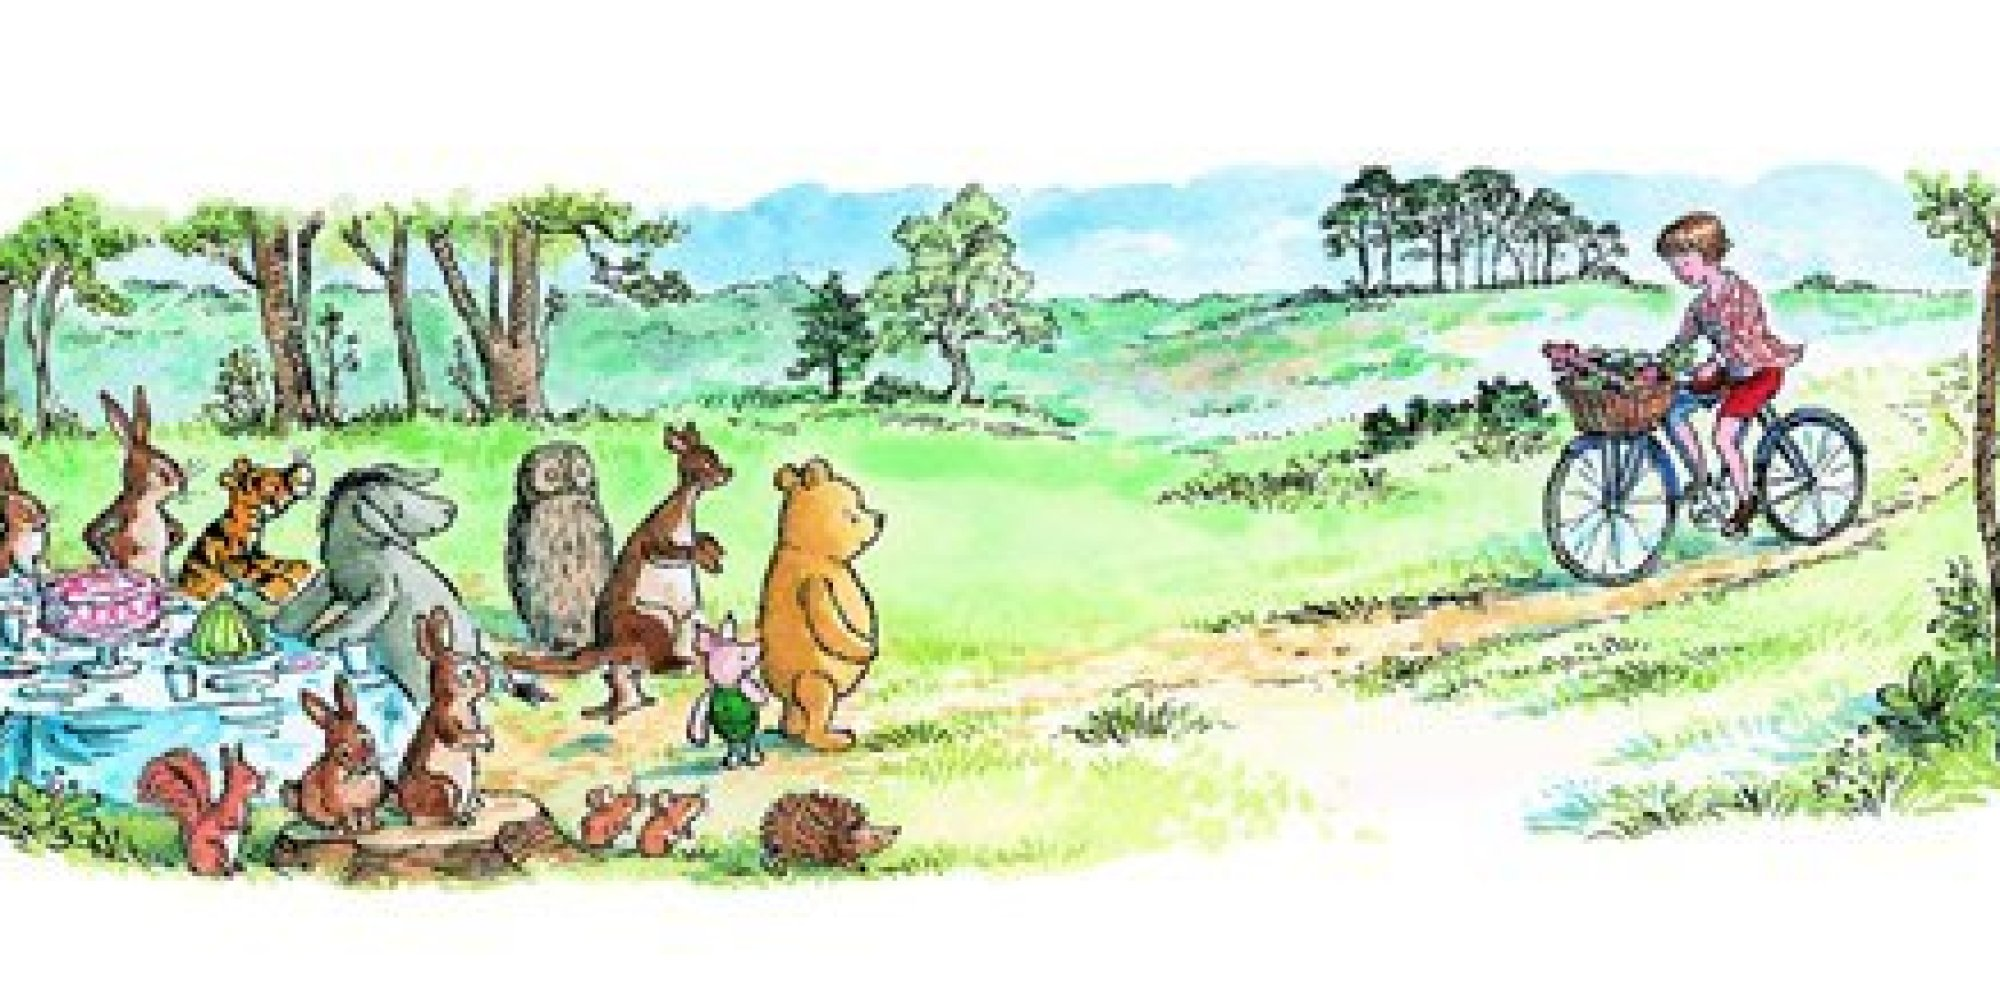 8 Heartbreakingly Adorable Quotes From Winnie The Pooh